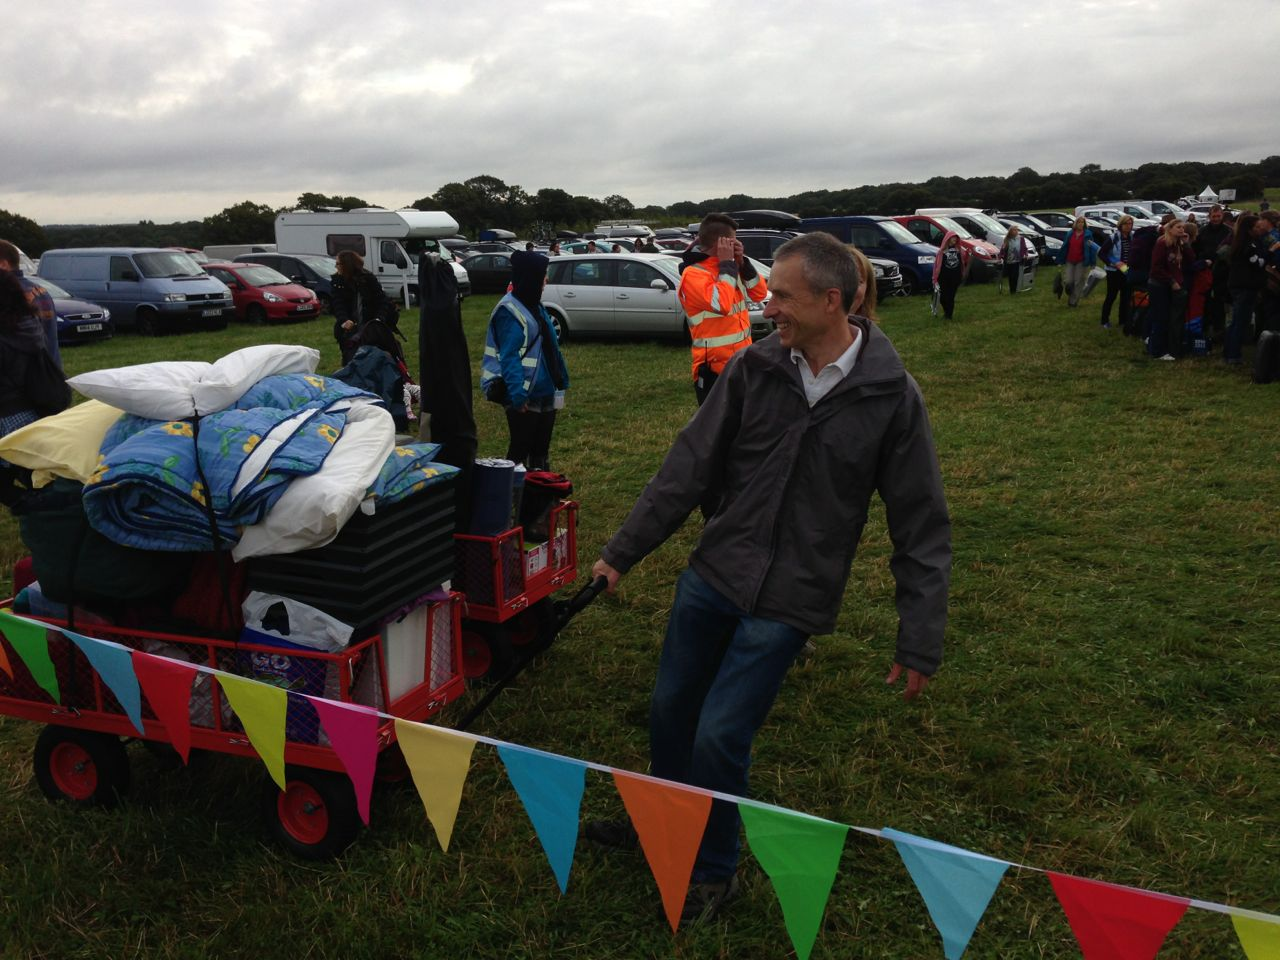 Trolley being used well at Carfest South